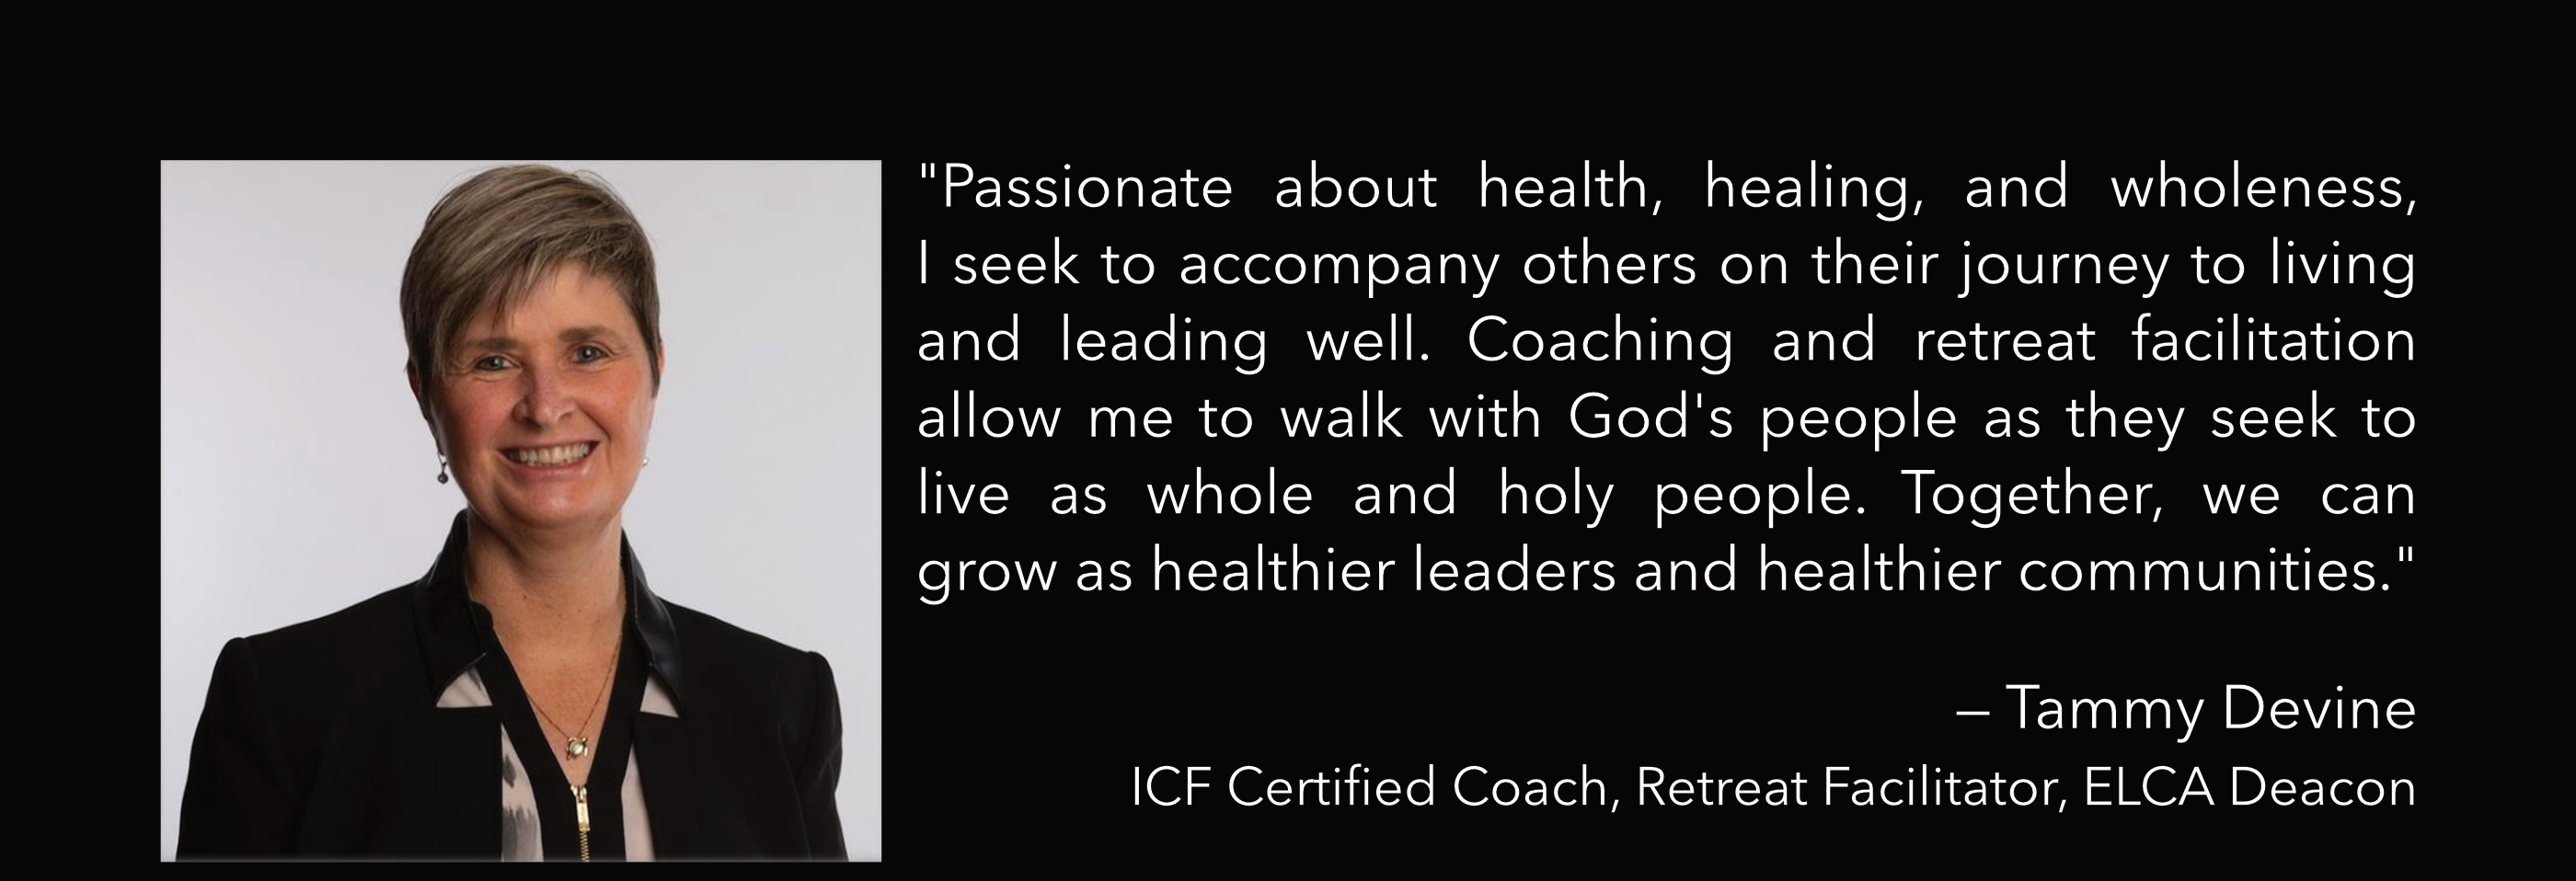 """Passionate about health, healing, and wholeness, I seek to accompany others on their journey to living and leading well. Coaching and retreat facilitation allow me to walk with God's people as they seek to live as whole and holy people. Together, we can grow as healthier leaders and healthier communities."" — Tammy Devine (ICF Certified Coach, Retreat Facilitator, ELCA Deacon)"